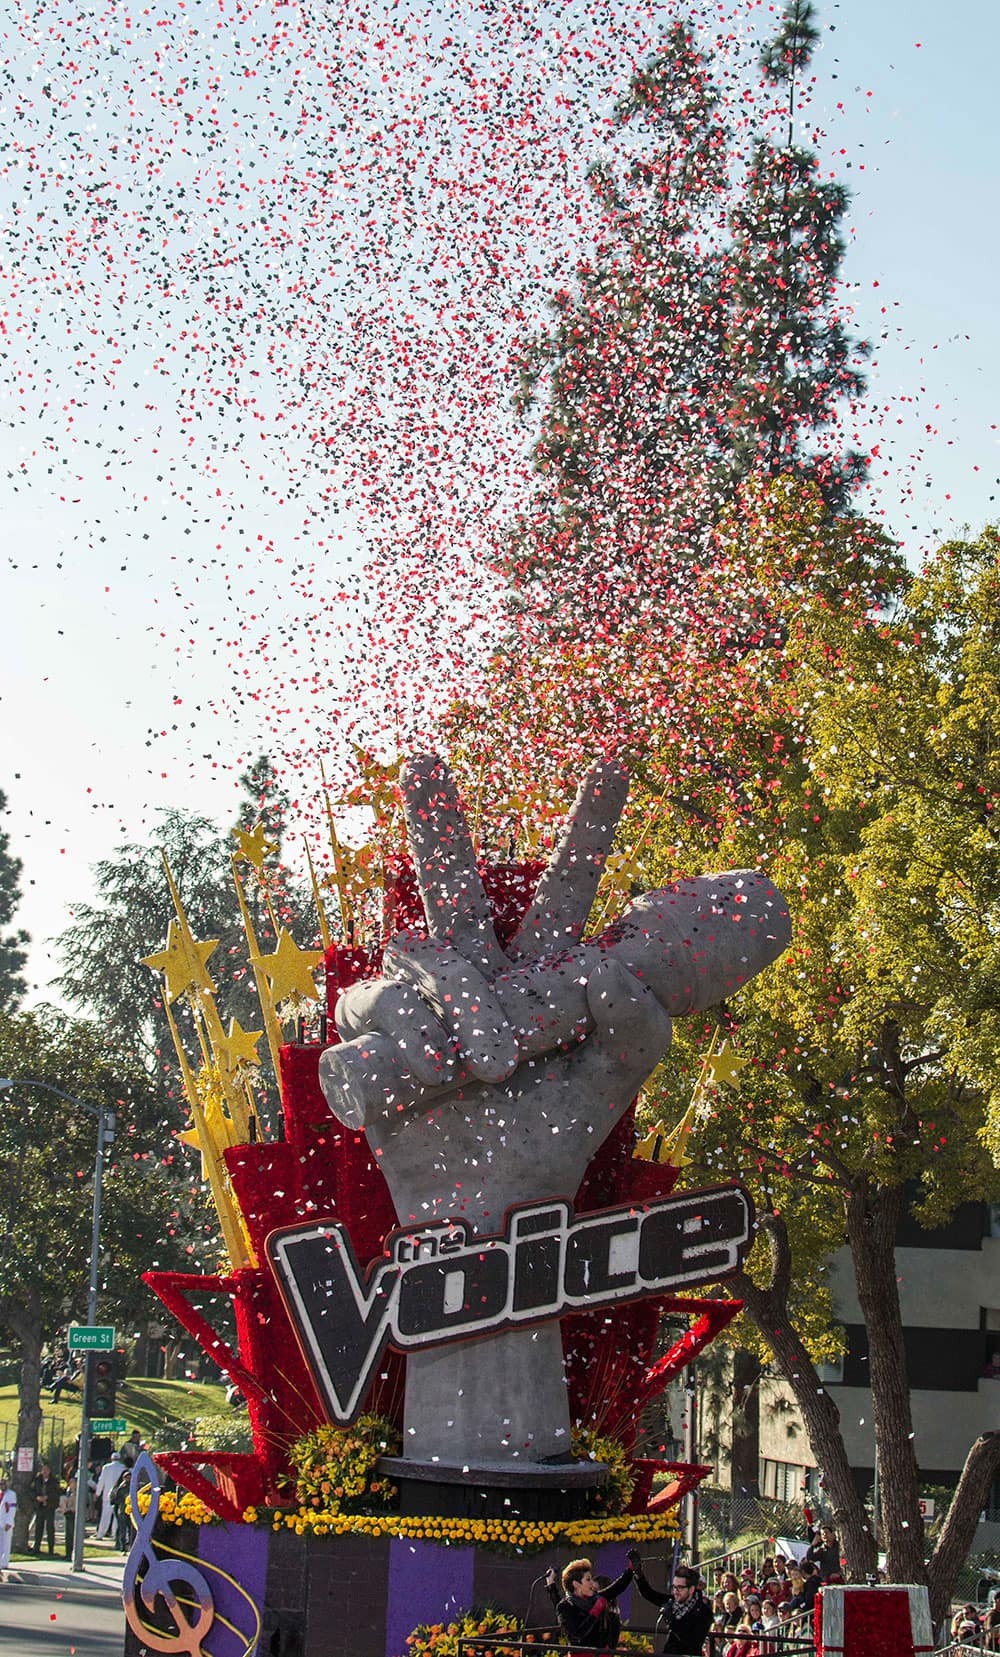 NBC`s The Voice float `Singing the Dream` moves along Orange Grove Boulevard during the 125th Tournament of Roses Parade in Pasadena, Calif.